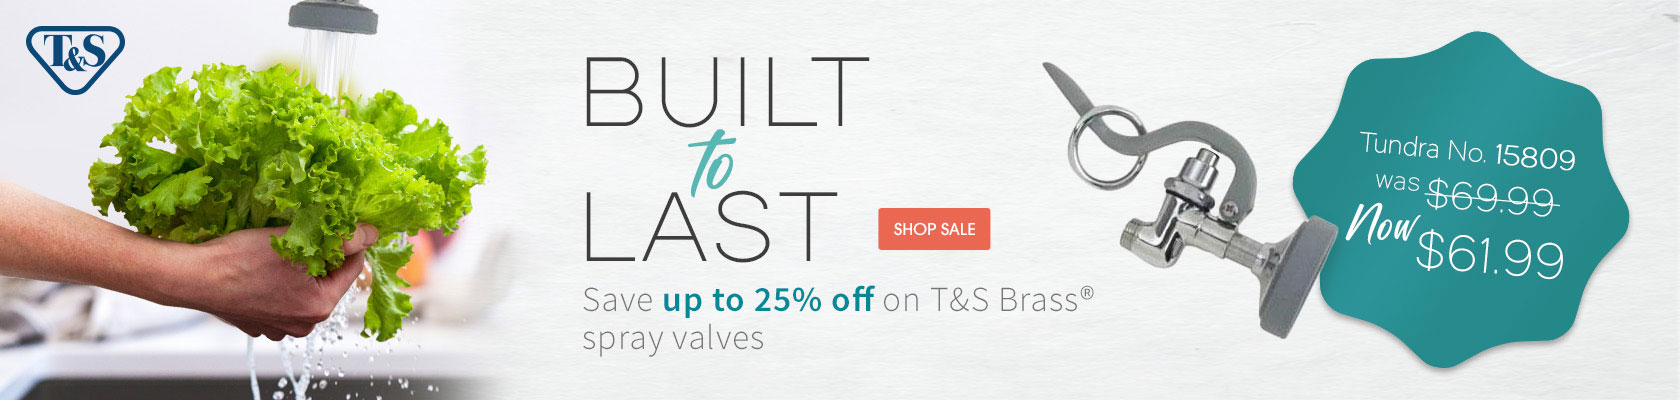 Built to last. Save up to 25% off on T&S Brass® spray valves